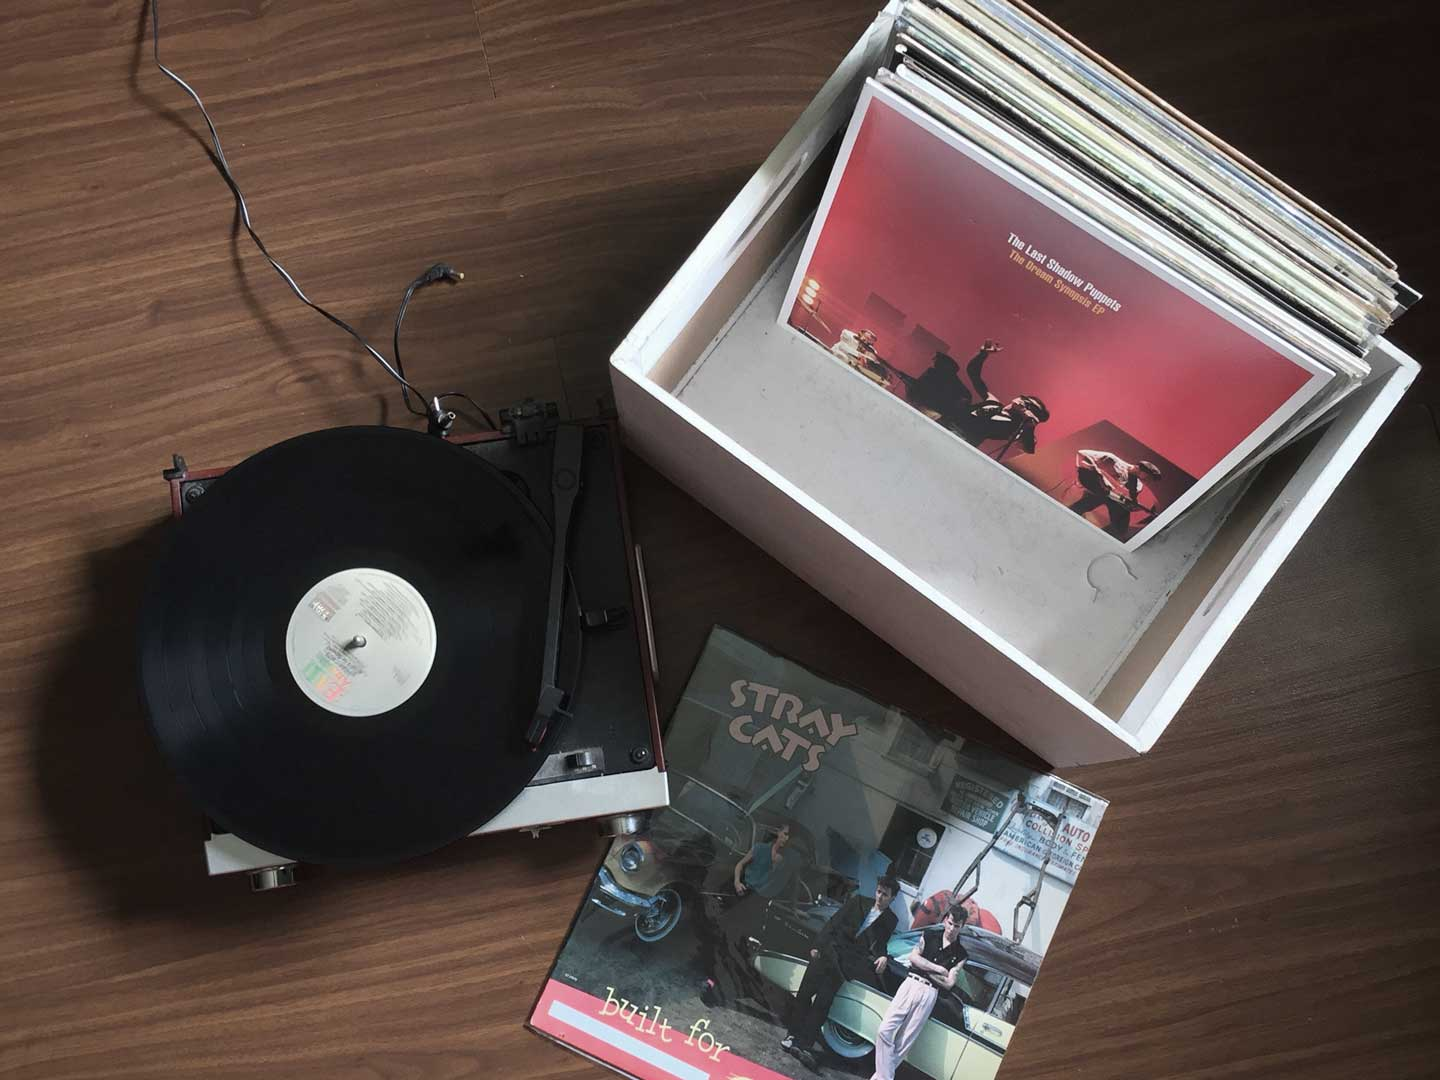 A crate of vinyl featuring Stray Cats and The Last Shadow Puppets